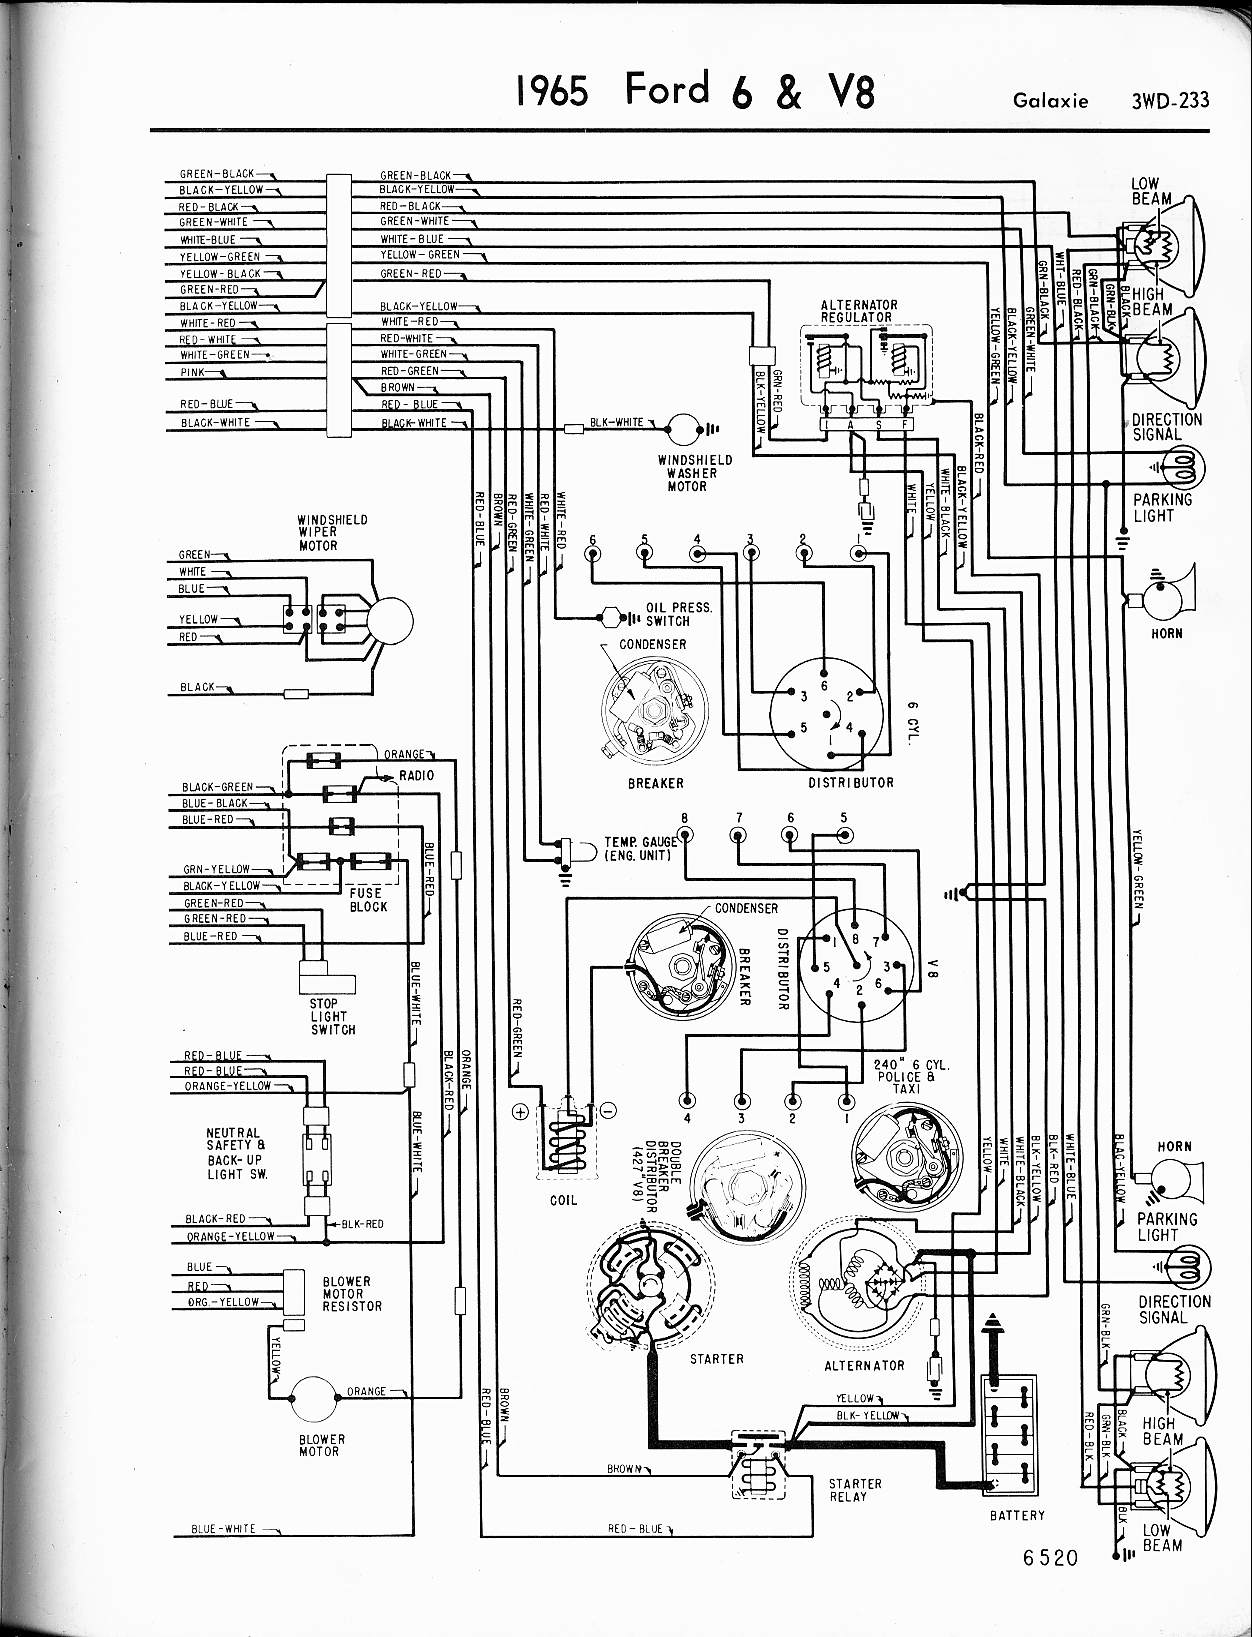 event wiring diagram 100   power window module closer wiring diagram   how to wire  window module closer wiring diagram